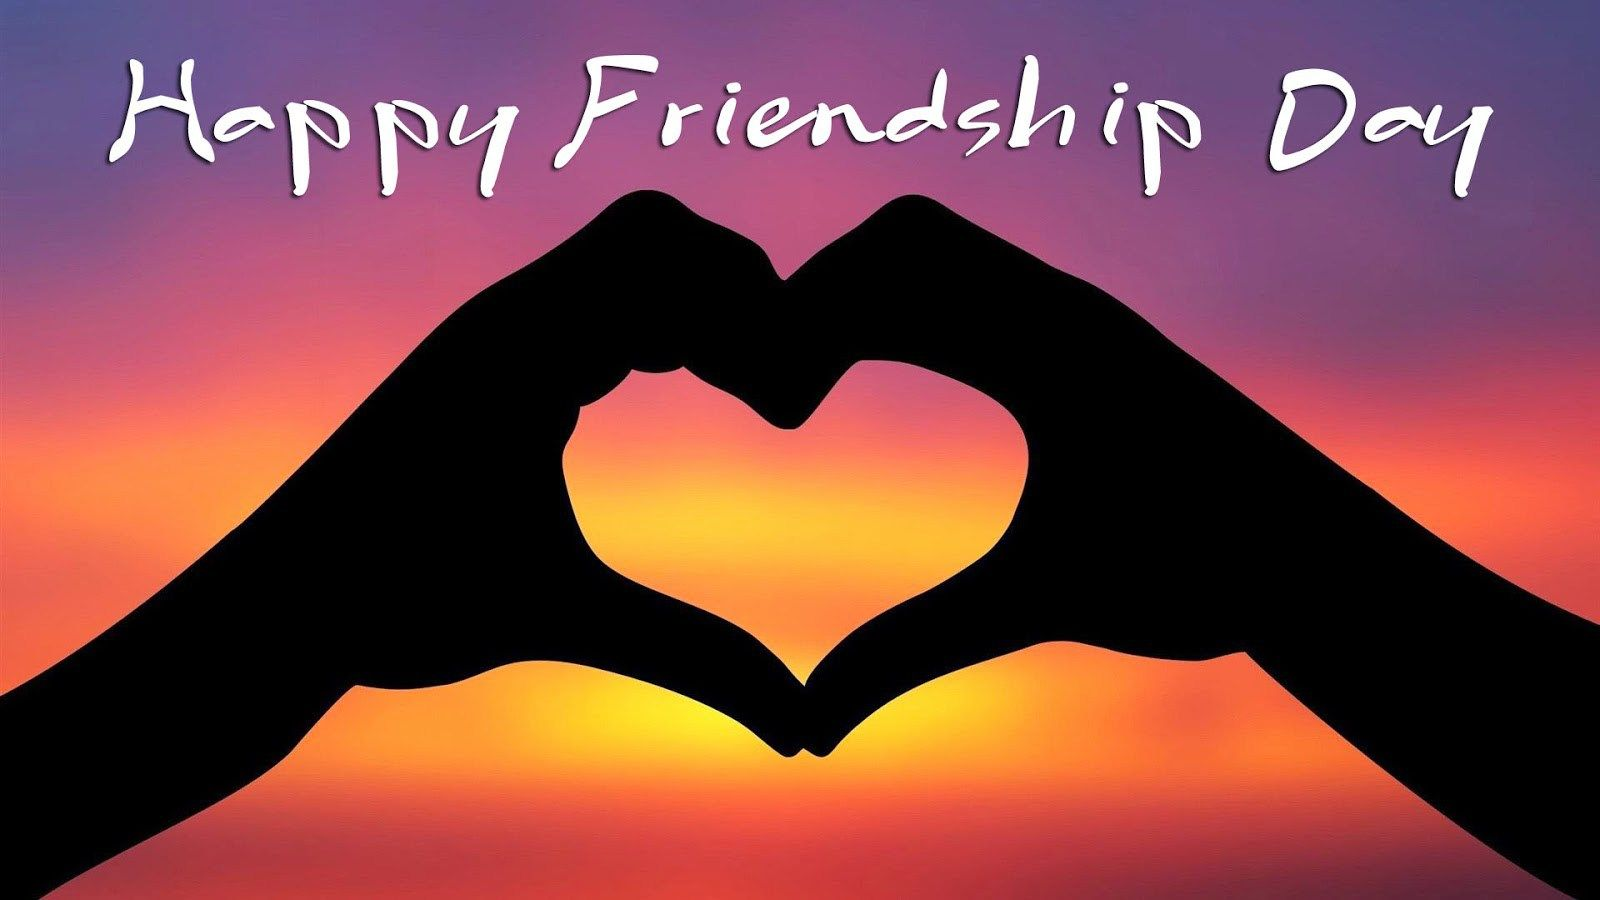 International Friendship Day Wishes Images Sms Messages And Quotes